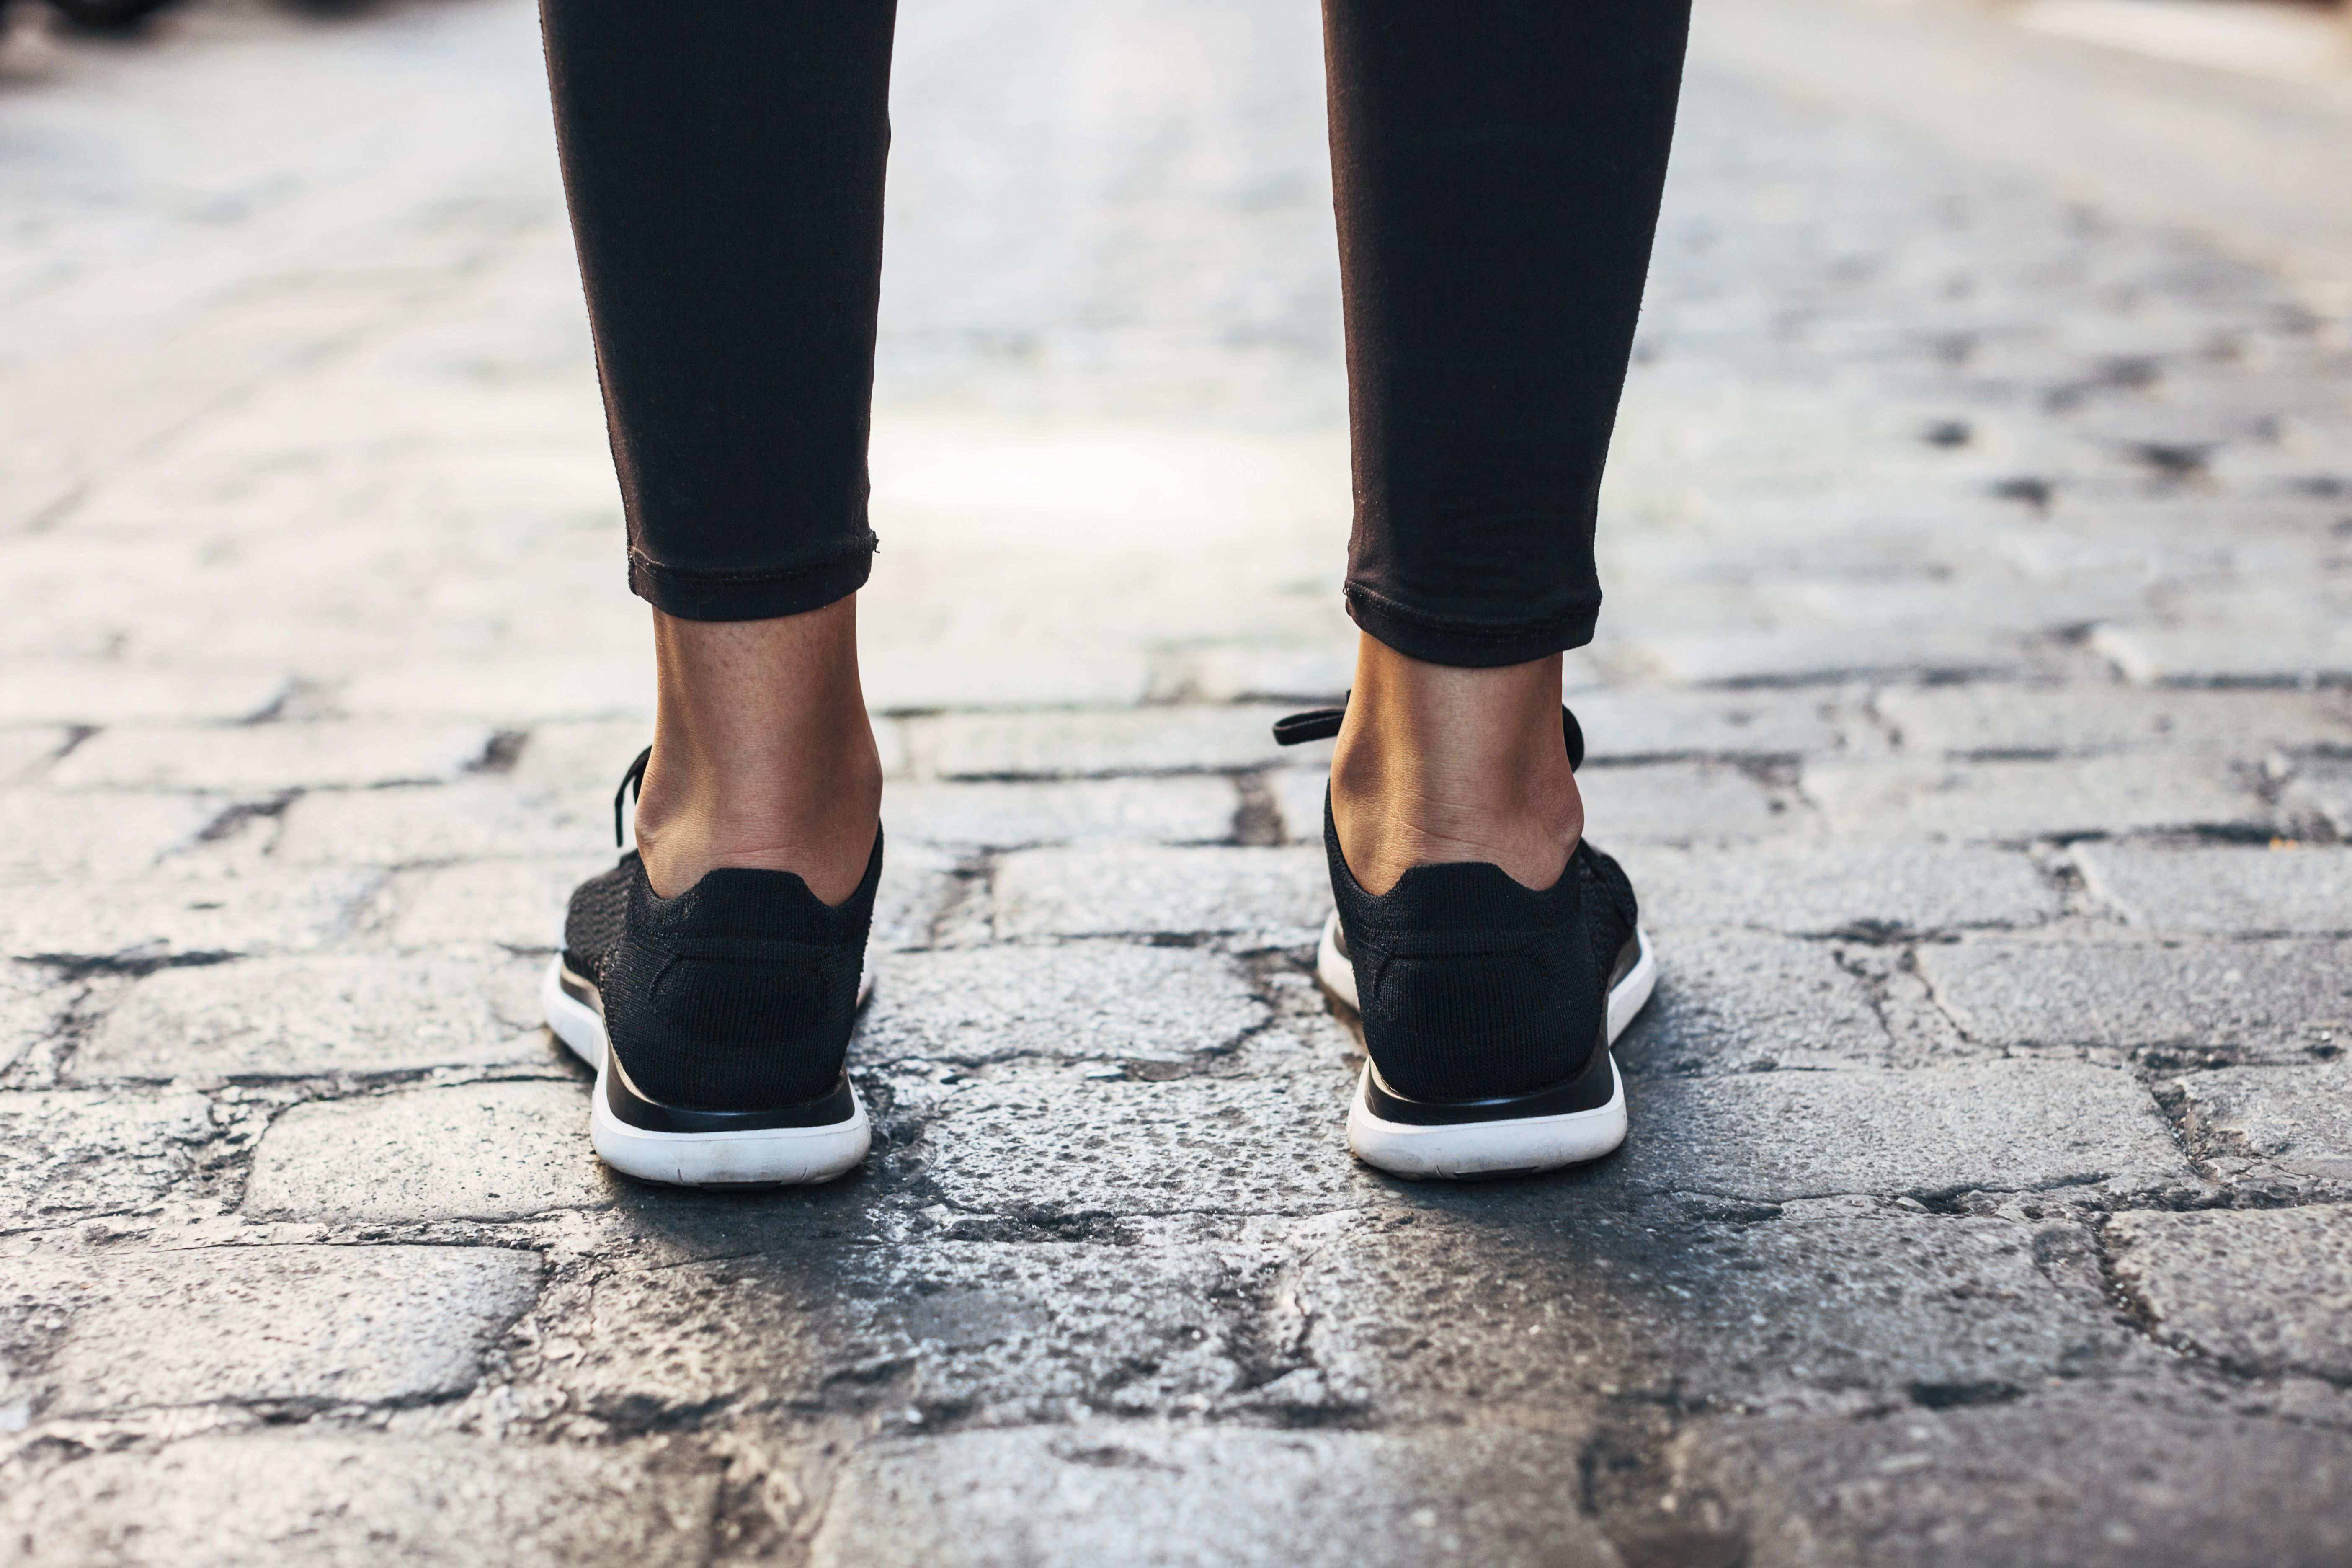 b4cc21abc5a7 The 6 Best Shoes and Solutions to Buy for Low-Volume Feet in 2019